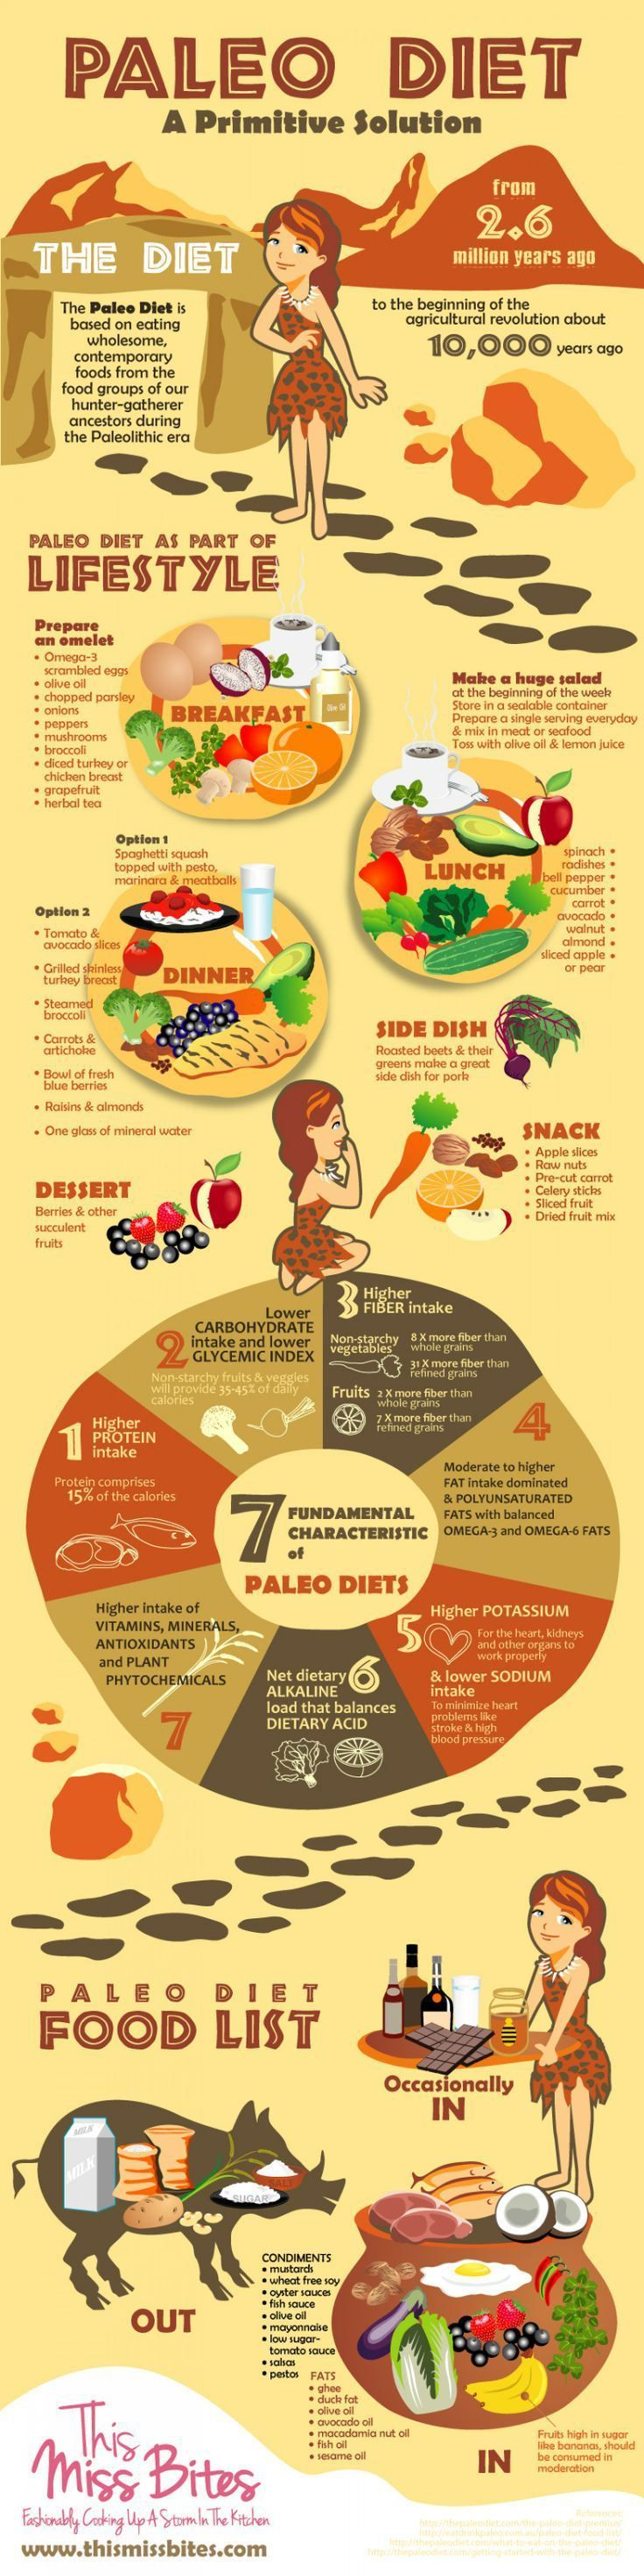 Bodybuilding diet plan for muscle mass picture 3